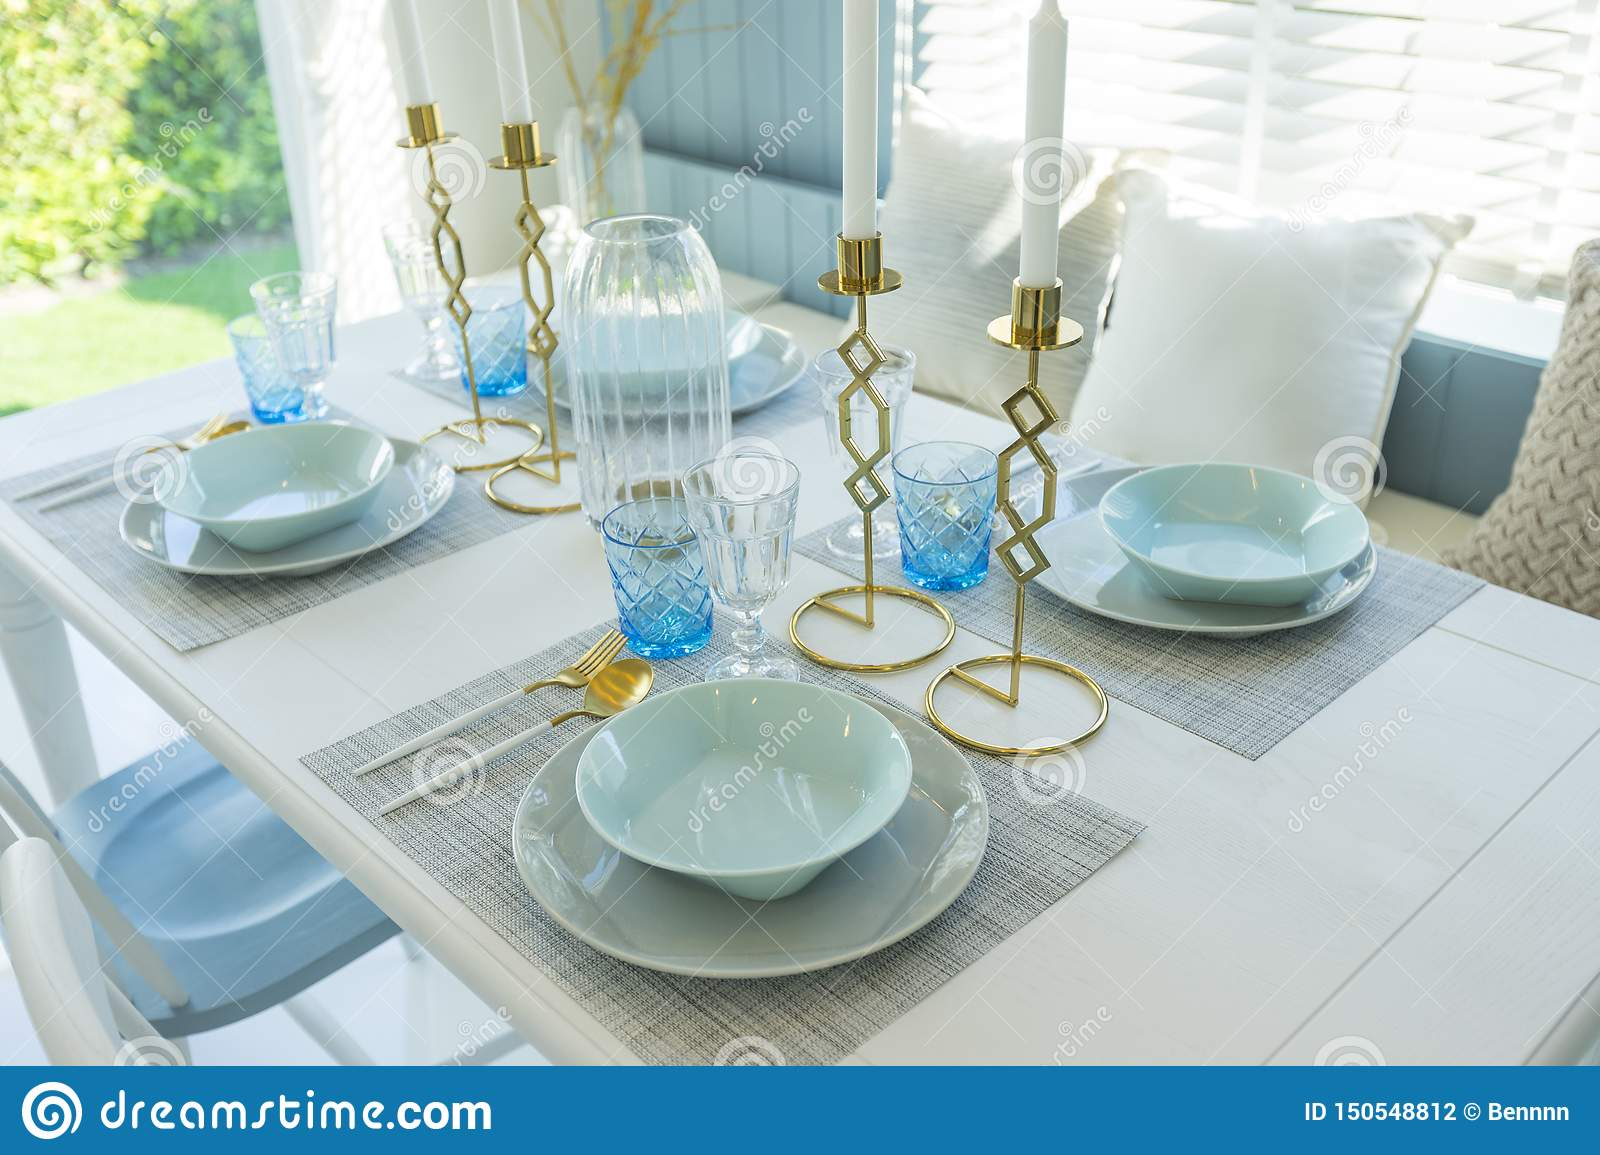 Miraculous Pale Blue Plate Setting On Table With Gold Candle Holder In Download Free Architecture Designs Scobabritishbridgeorg